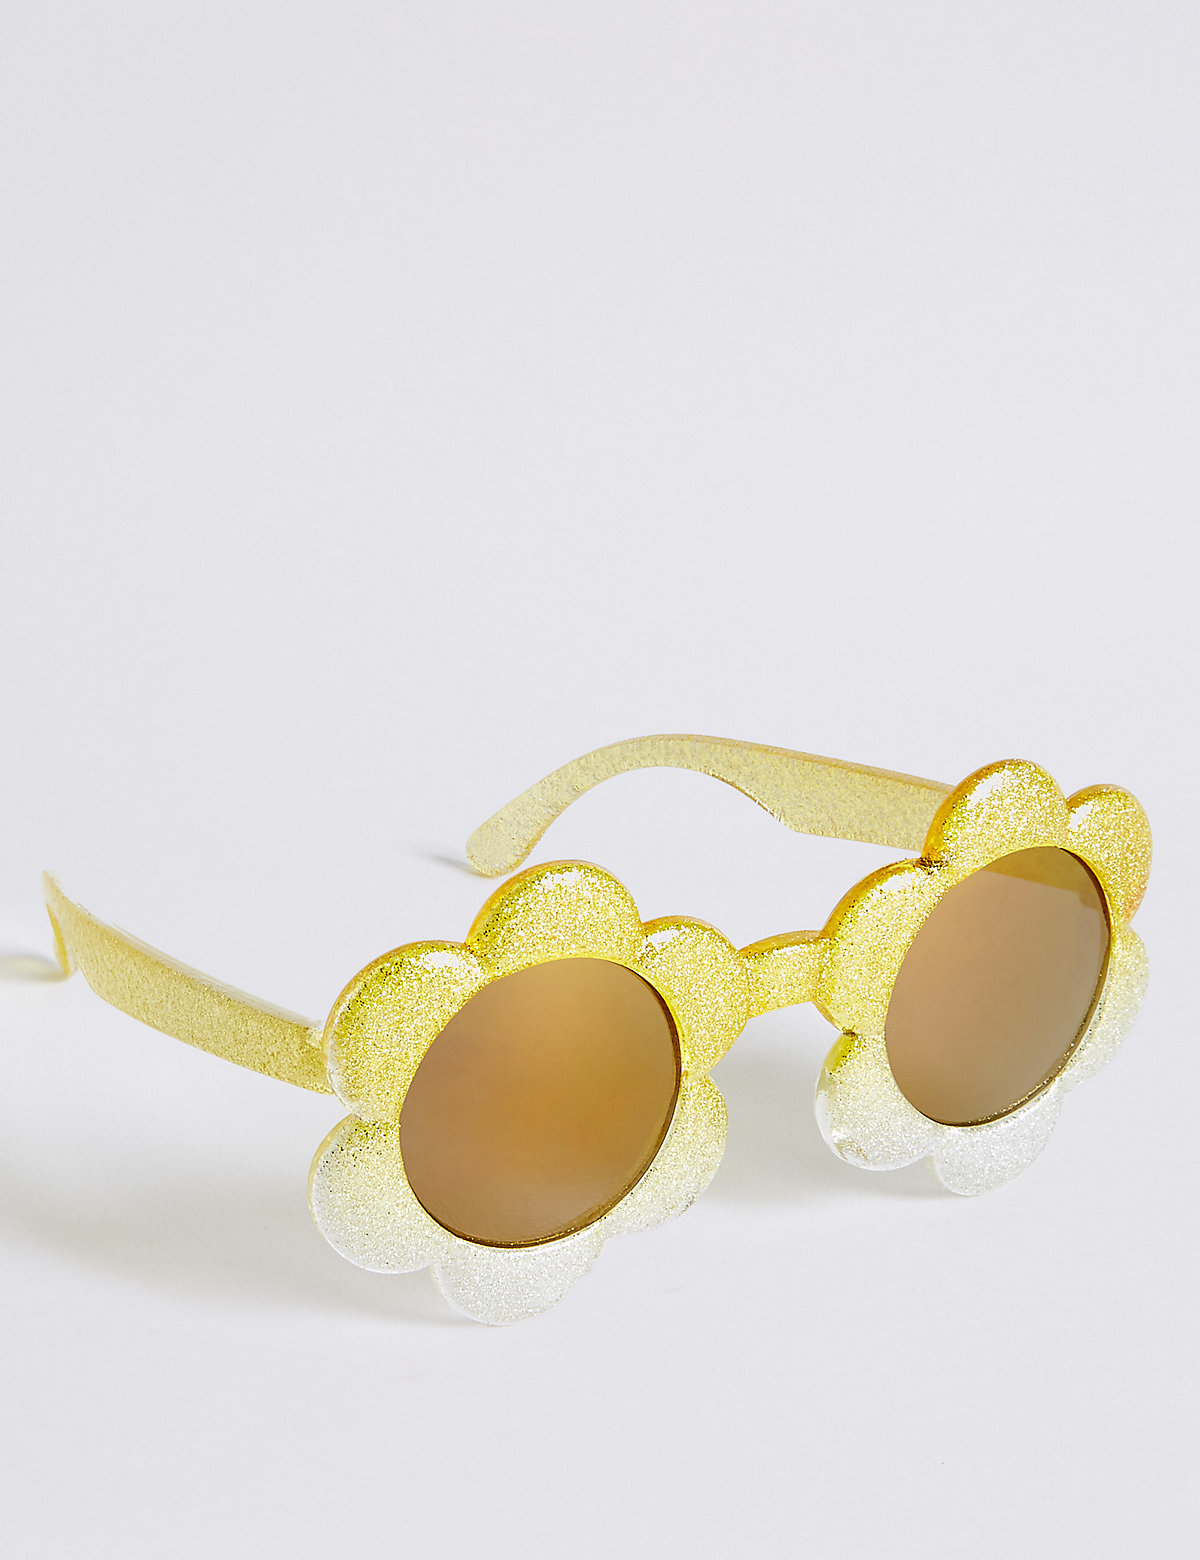 Image of Youngers' Novelty Floral Sunglasses